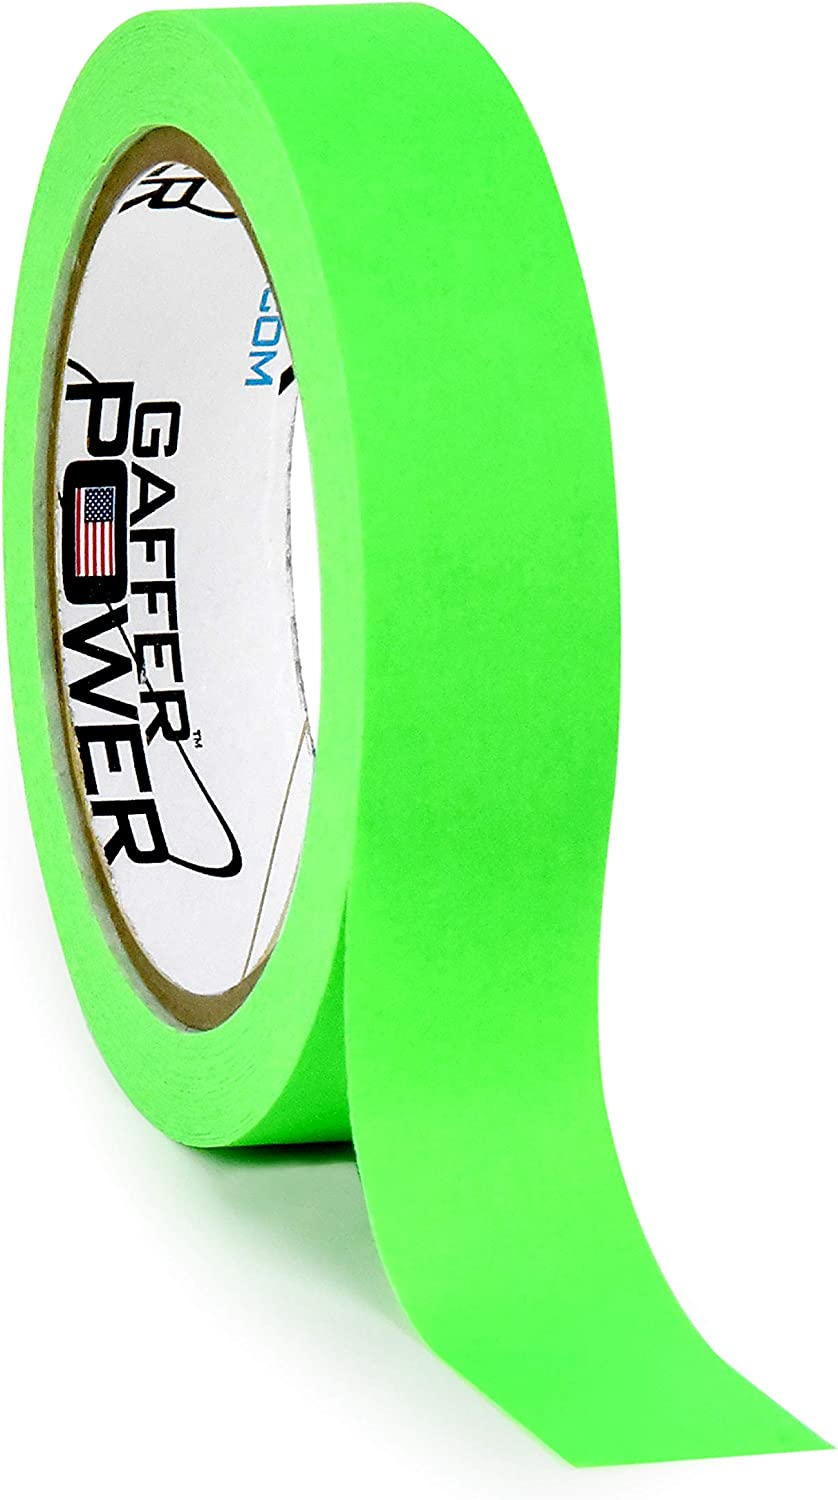 Labeling Tape - Fluorescent Green - Clean Removable Adhesive Tape   Console Tape for Light Control Board, DJ Mixing Board, Audio Mixer, Arts and Crafts, Office Products, Ink Pens and Markers  